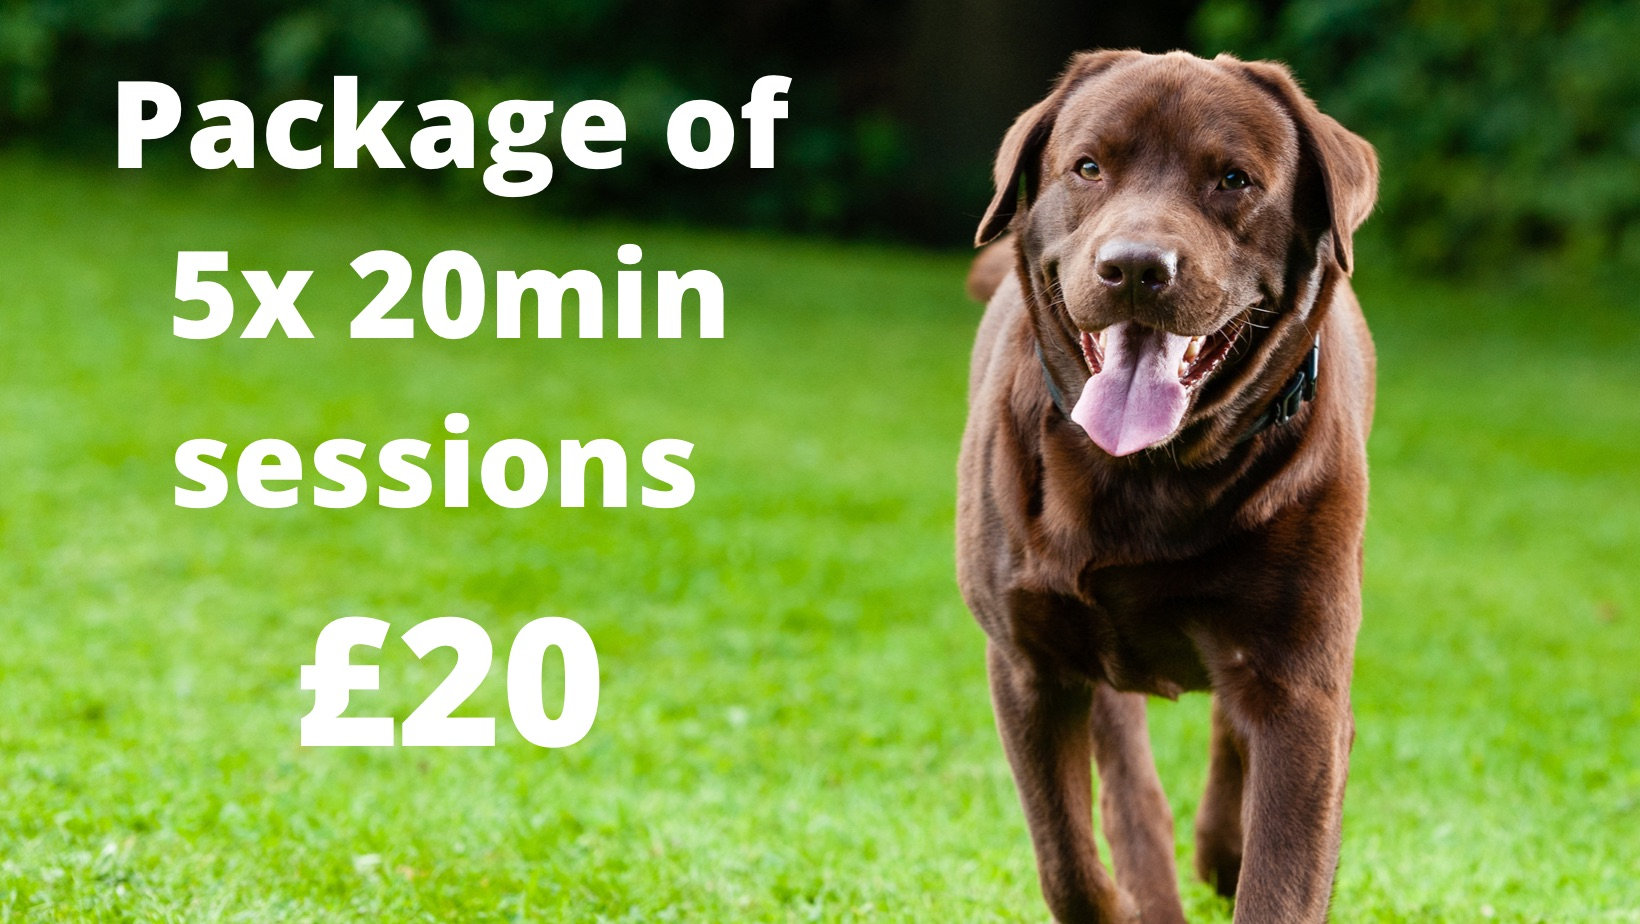 £20 for five 20 minute sessions